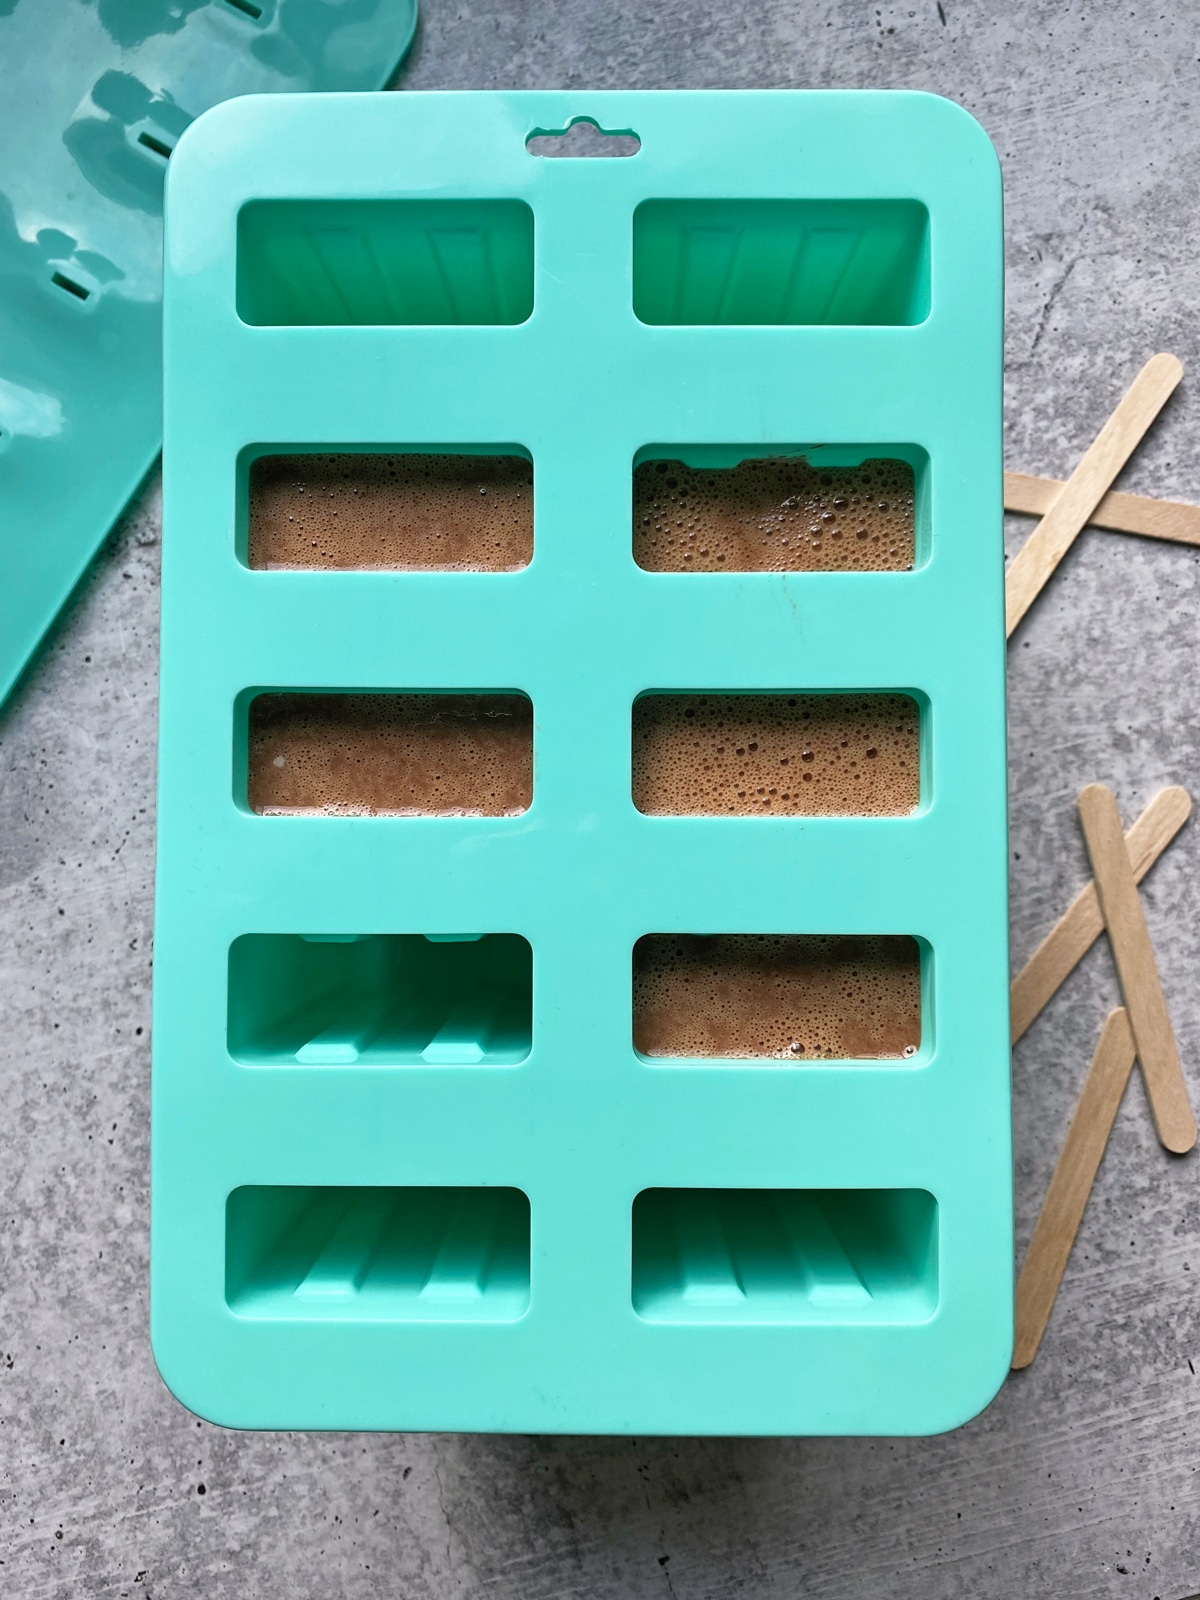 fudgesicles-ready-for-the-freezer